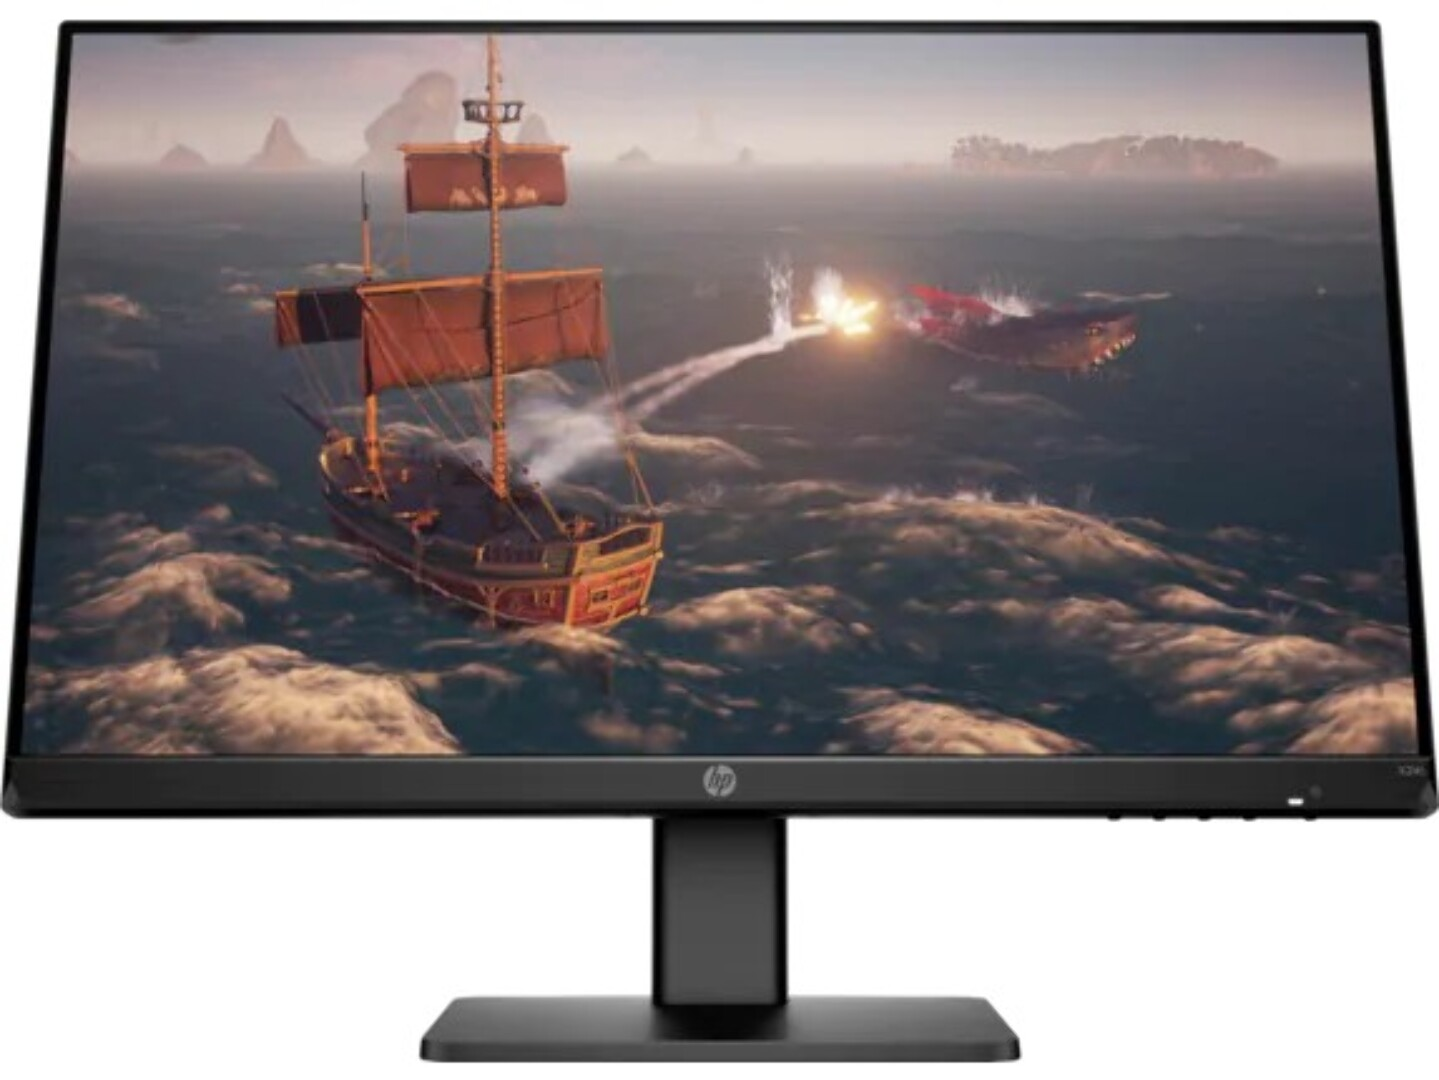 What size monitor do I need?